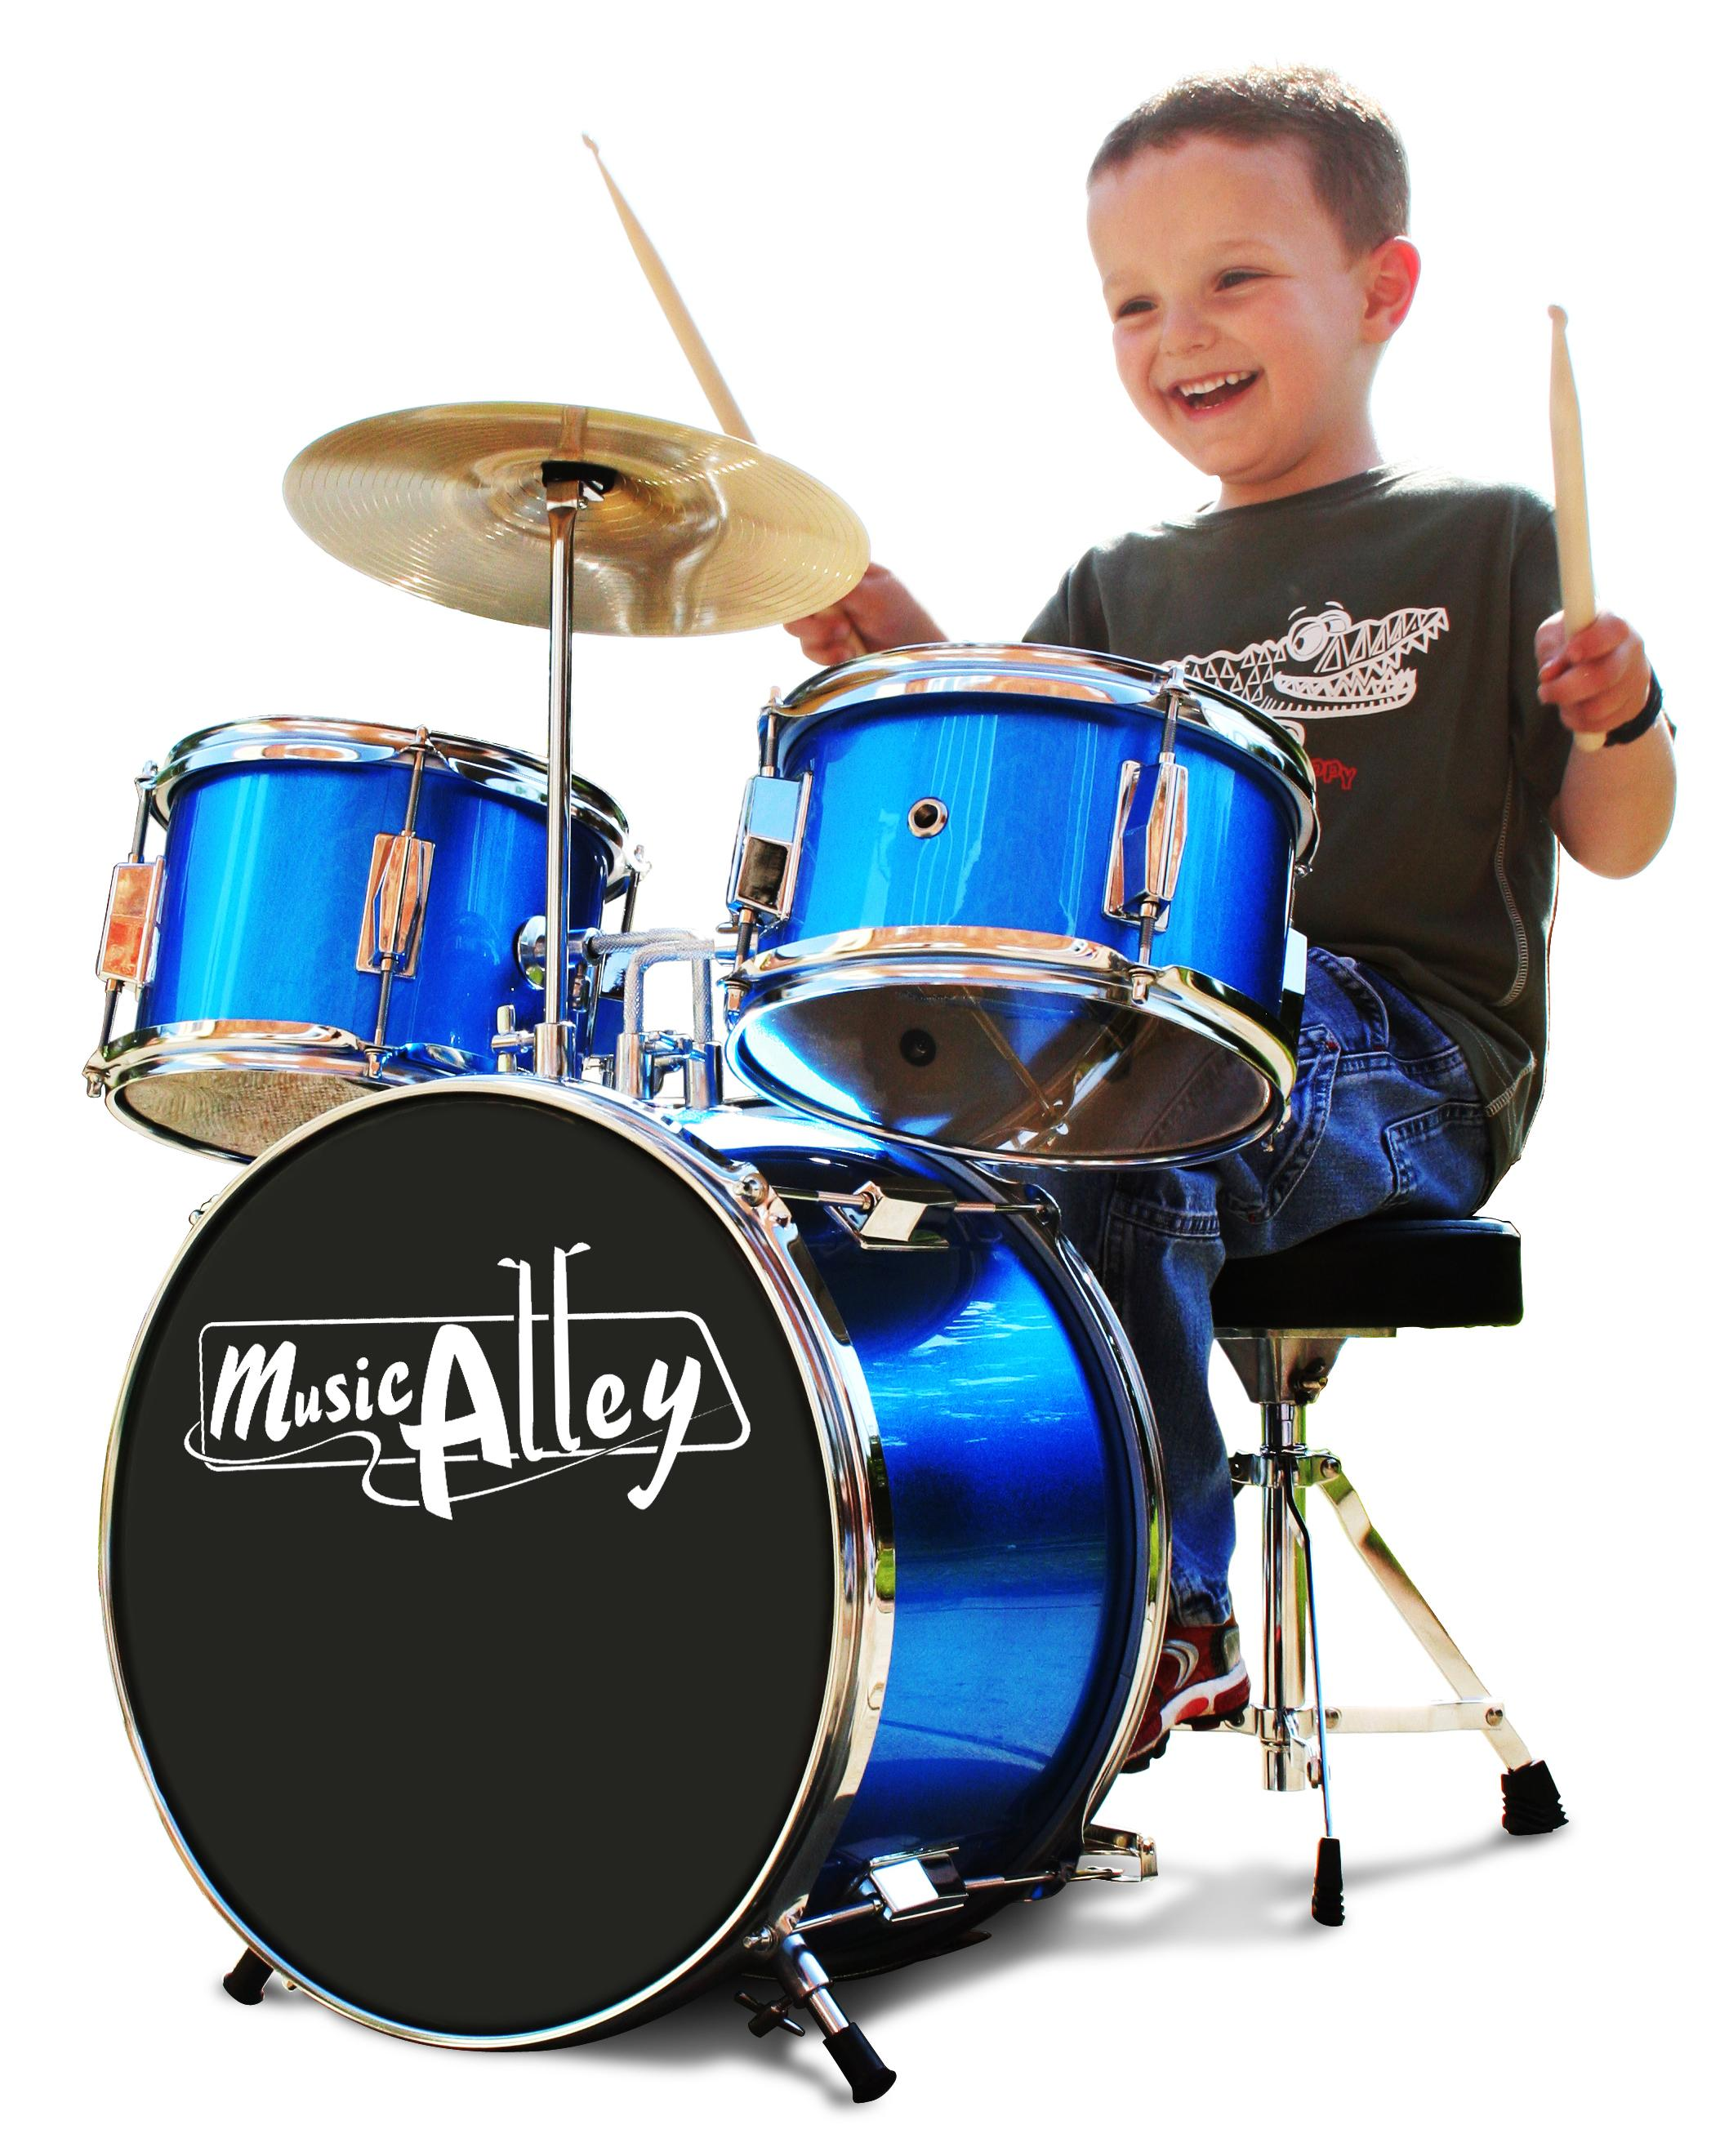 Music Alley 3 Piece Junior Drum Kit With Cymbal Pedal